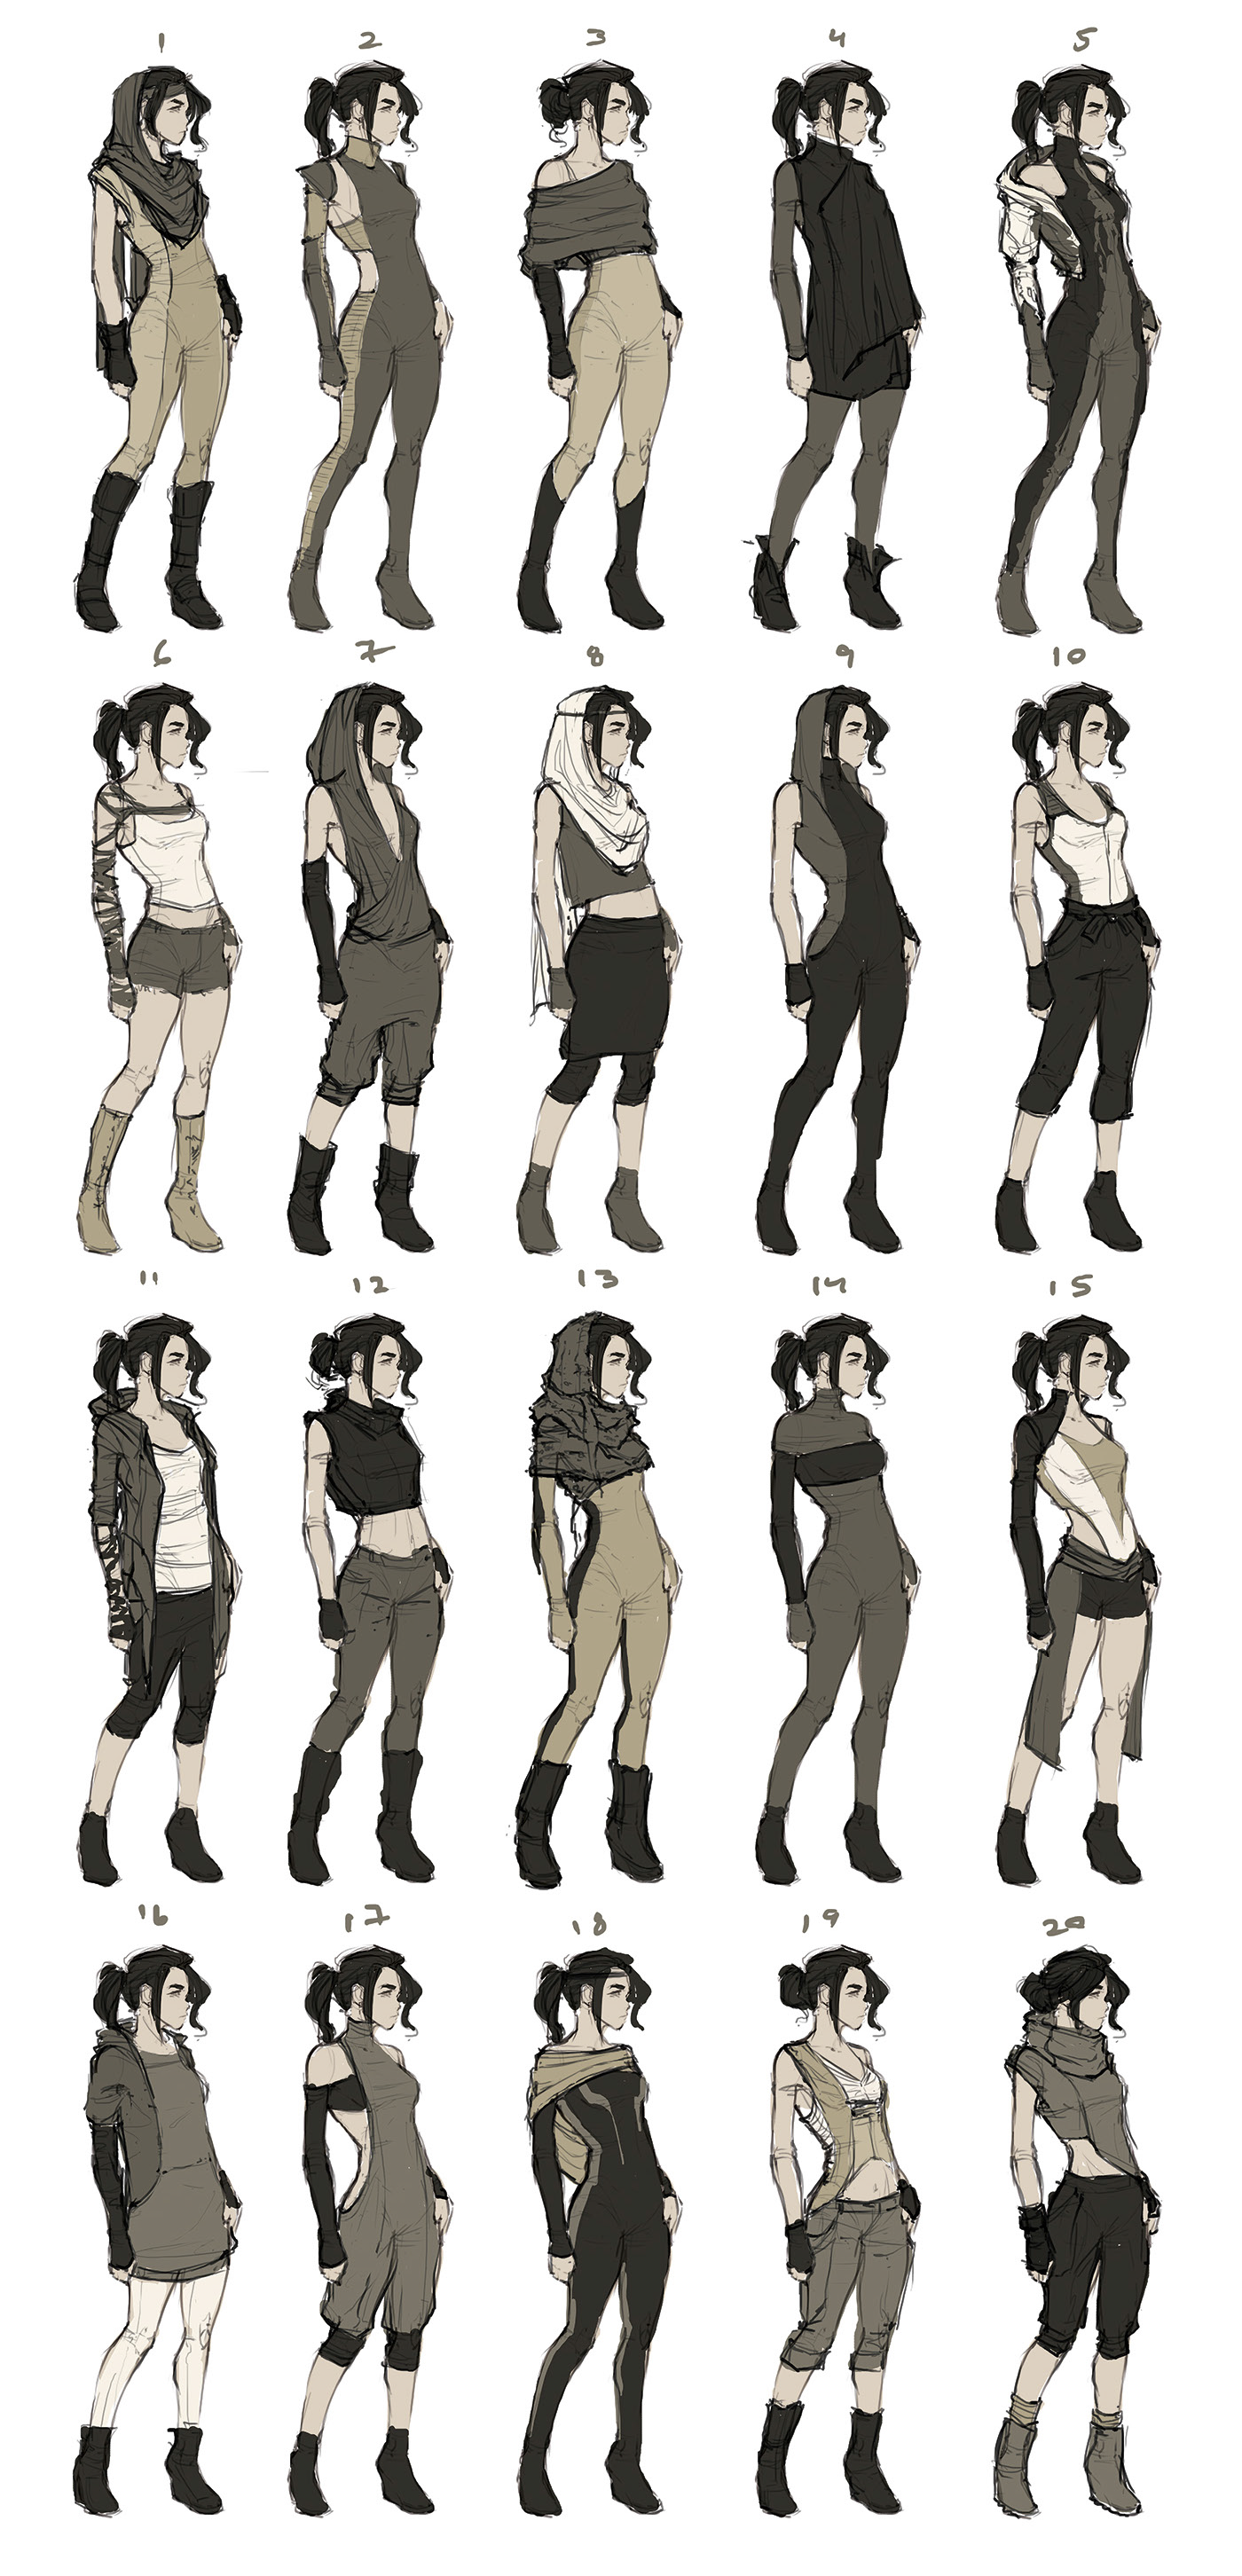 Pin by ♡ Chim ♡ on Character/concept art plus pose